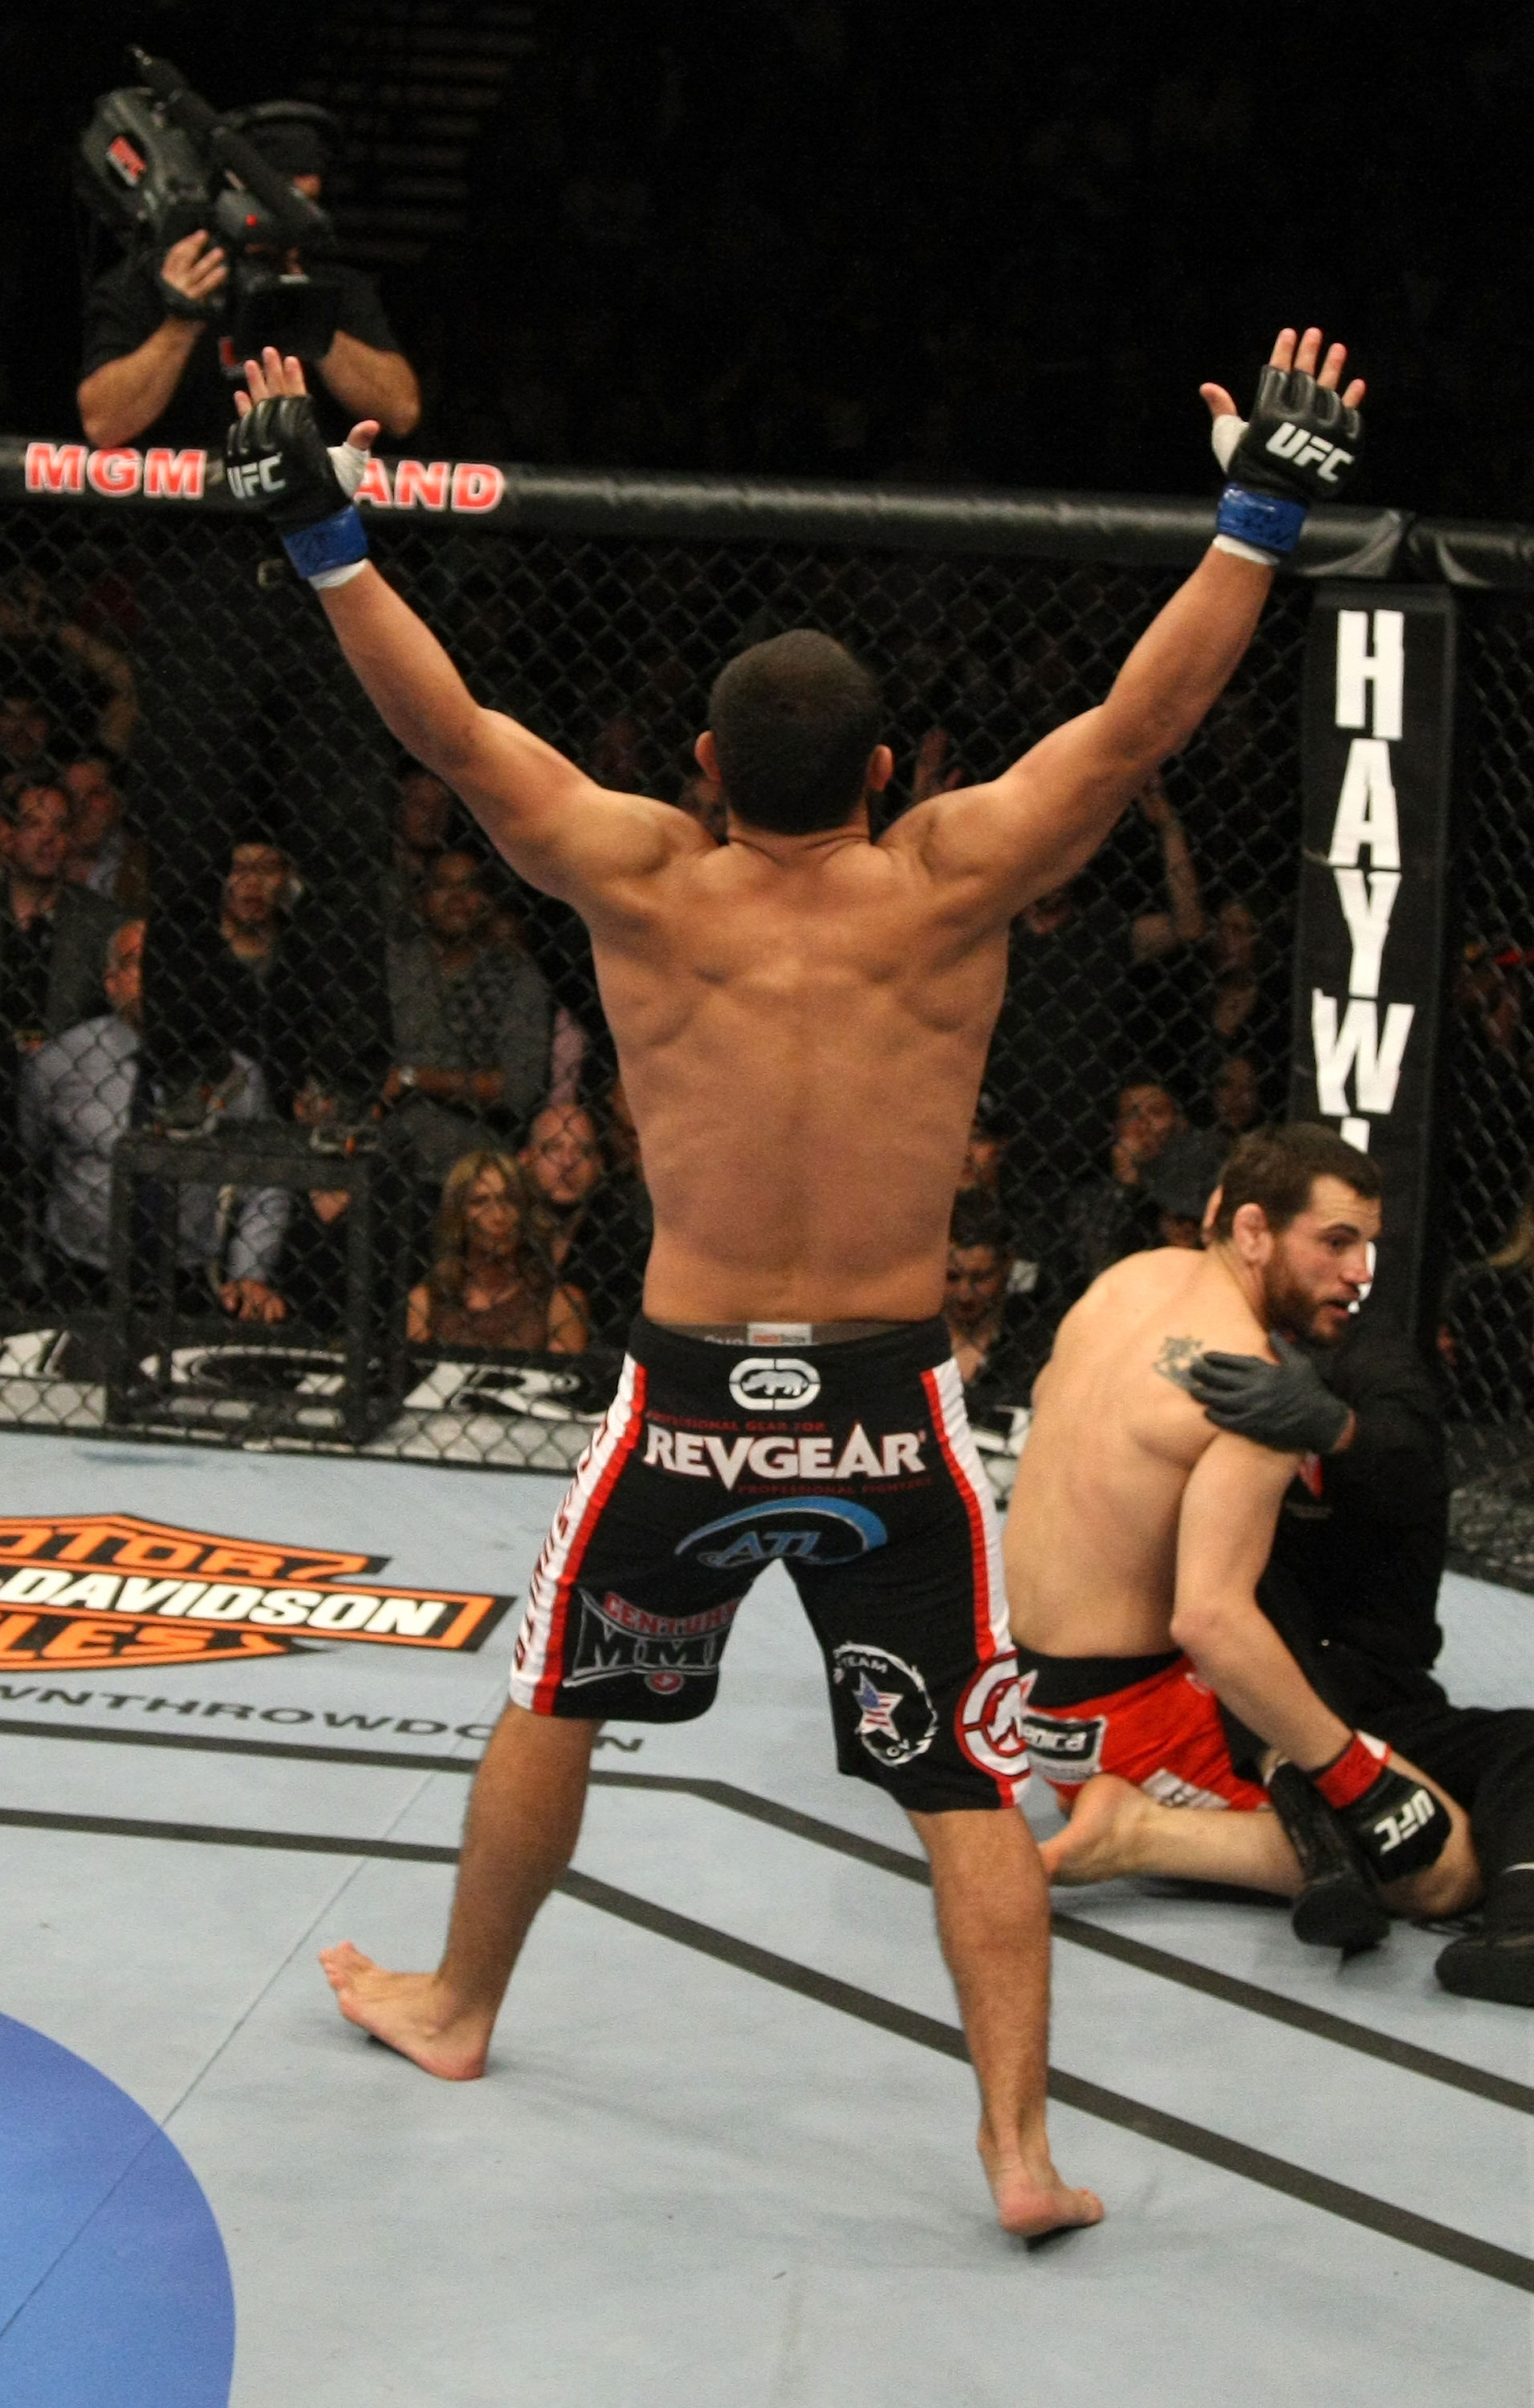 LAS VEGAS, NV - DECEMBER 30:  Johny Hendricks celebrates his knockout victory against Jon Fitch during the UFC 141 event at the MGM Grand Garden Arena on December 30, 2011 in Las Vegas, Nevada.  (Photo by Donald Miralle/Zuffa LLC/Zuffa LLC via Getty Images) *** Local Caption *** Johny Hendricks